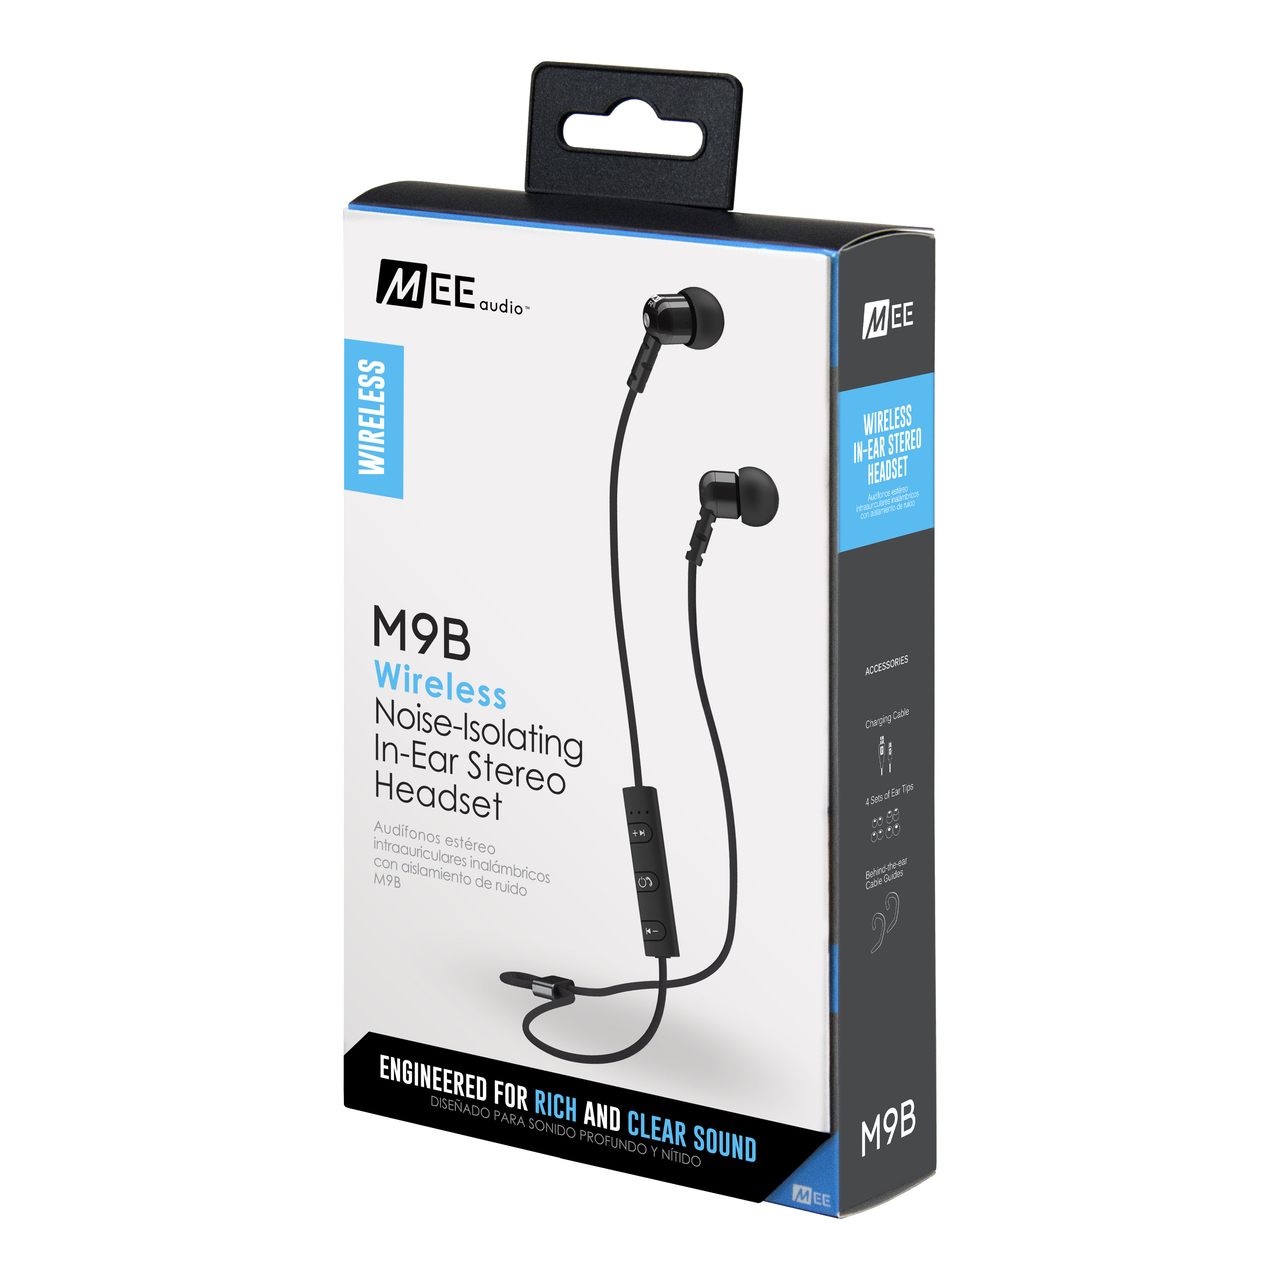 MEEAUDIO M9B BLUETOOTH WIRELESS NOISE-ISOLATING IN-EAR STEREO HEADSET - EP-M9B-BK-MEE